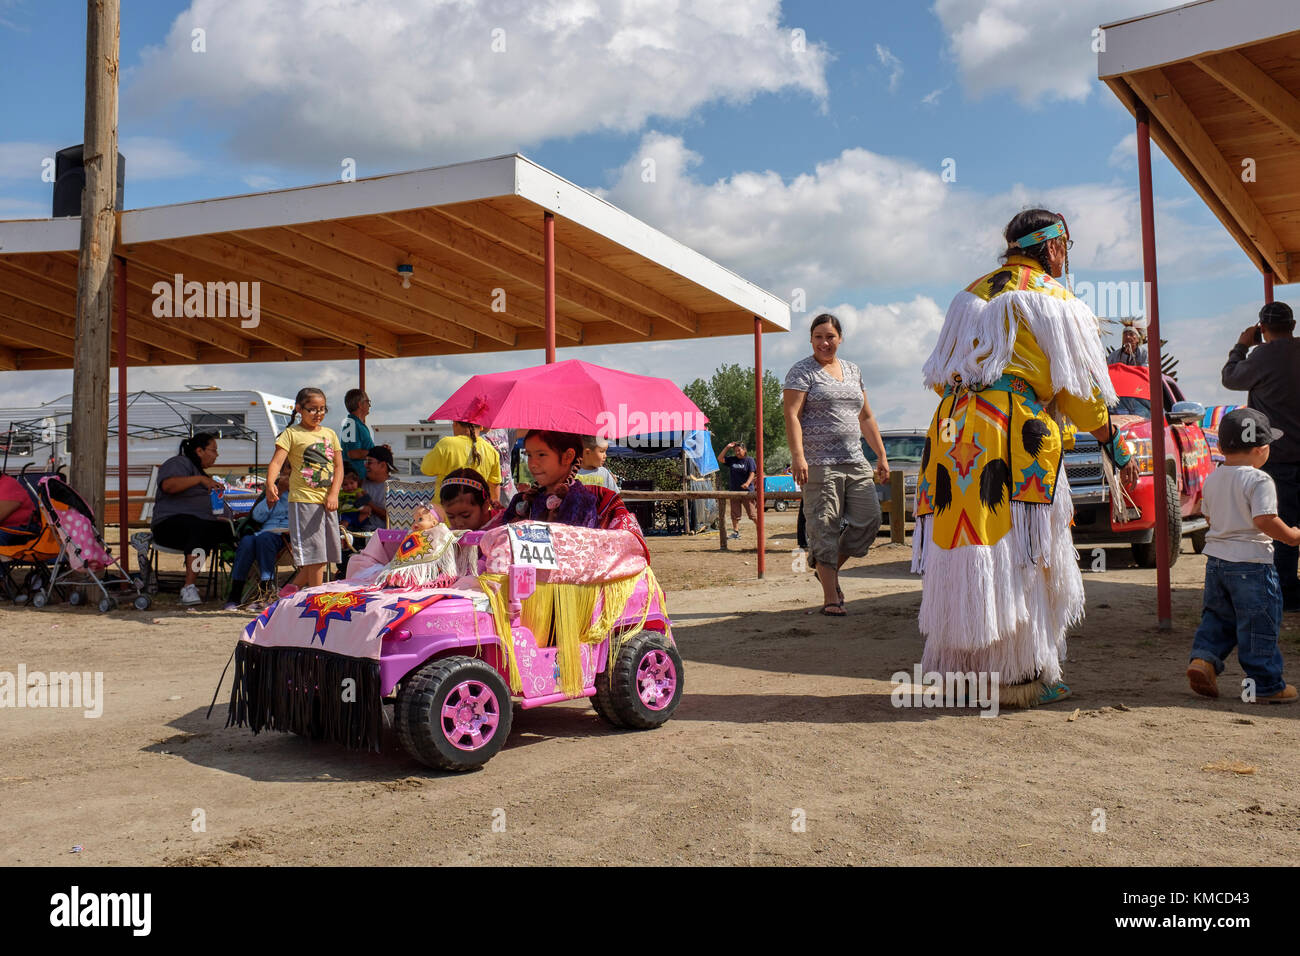 Familes At The Powwow Decorate Their Cars Trucks And Horses With